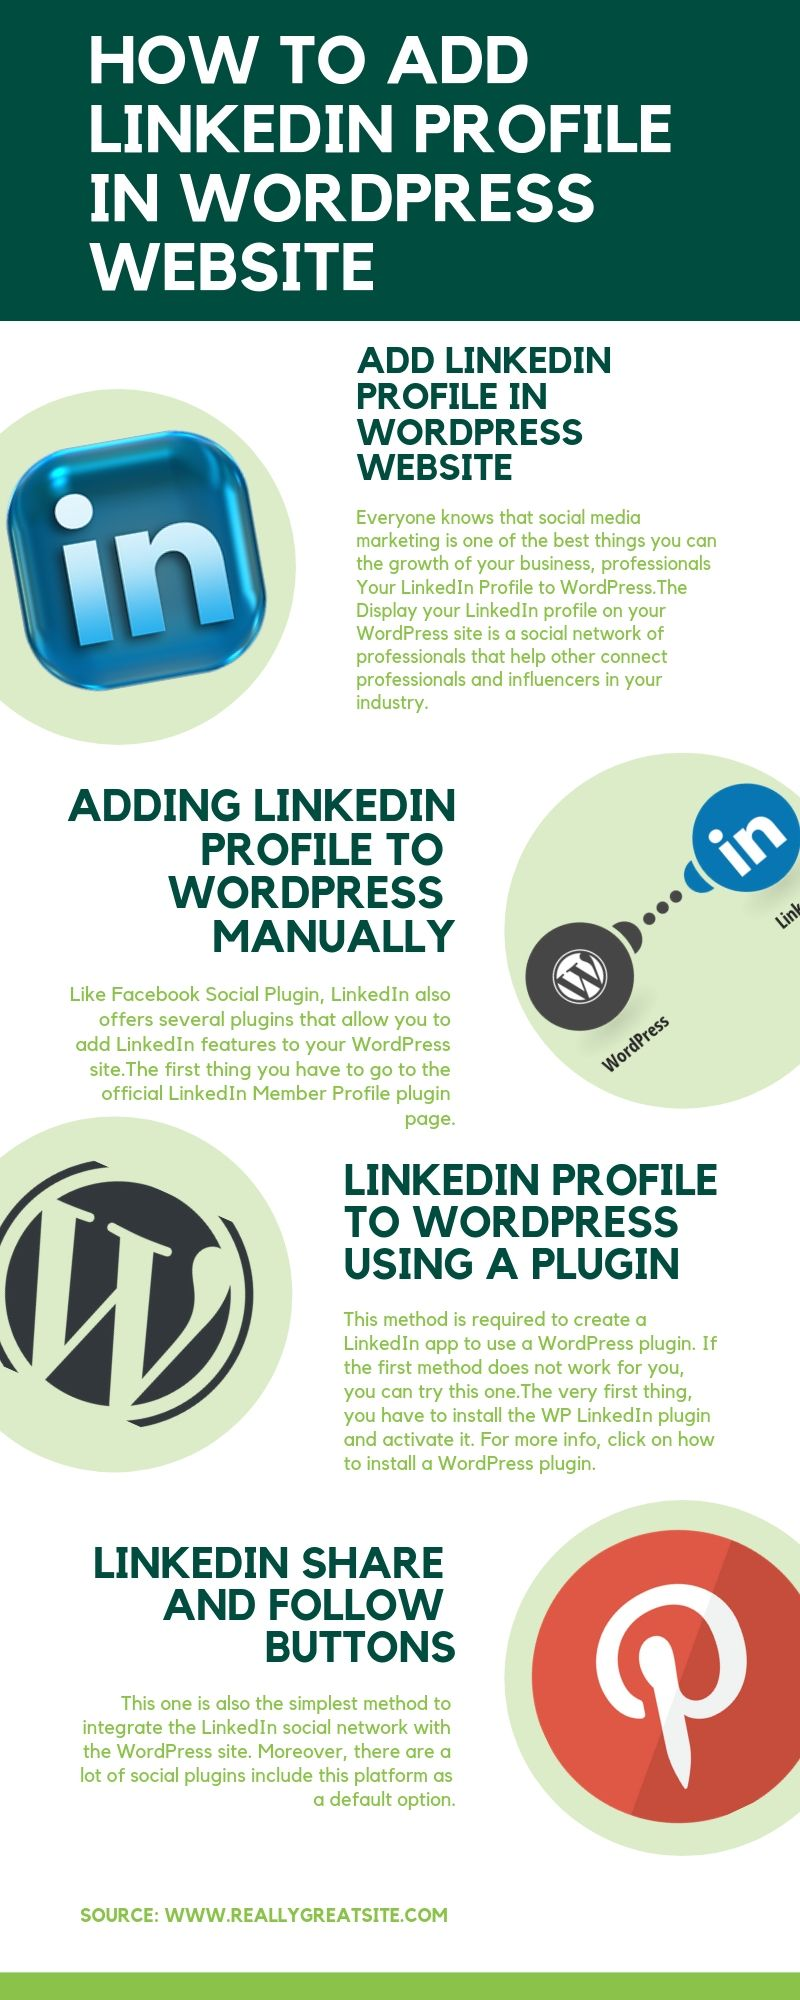 How To Add LinkedIn To WordPress? (With & Without Plugin